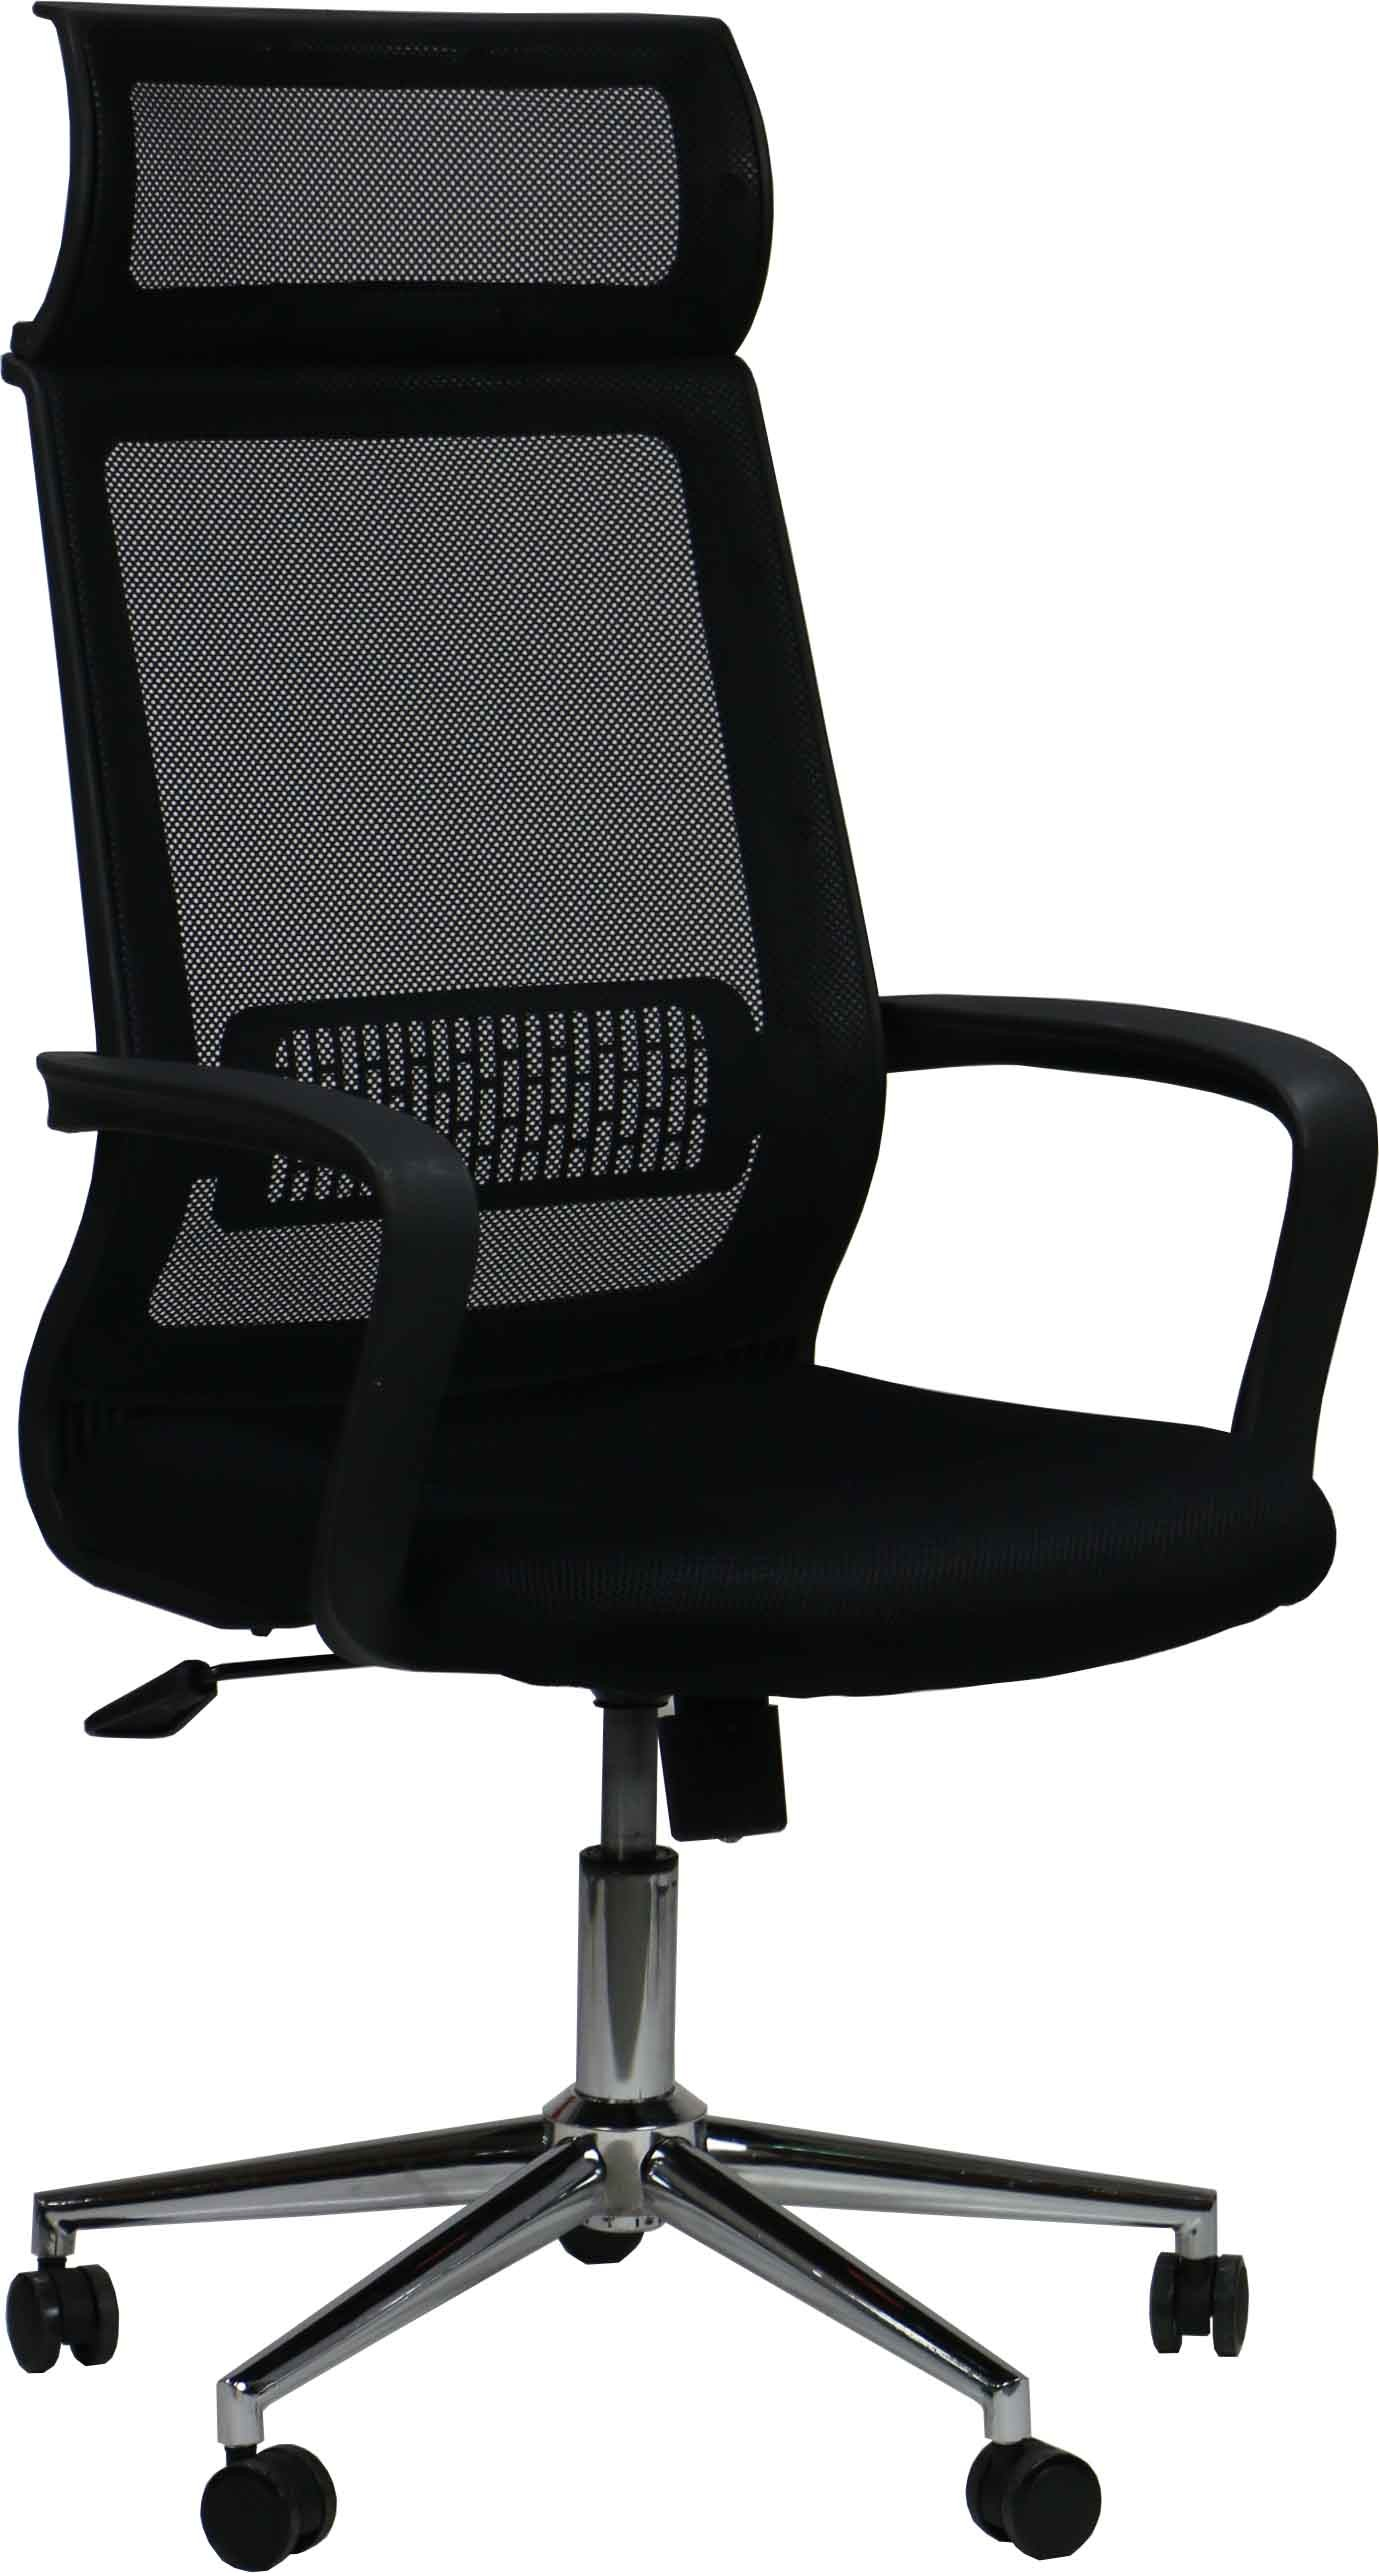 berlingo office chair furniture home d cor fortytwo. Black Bedroom Furniture Sets. Home Design Ideas